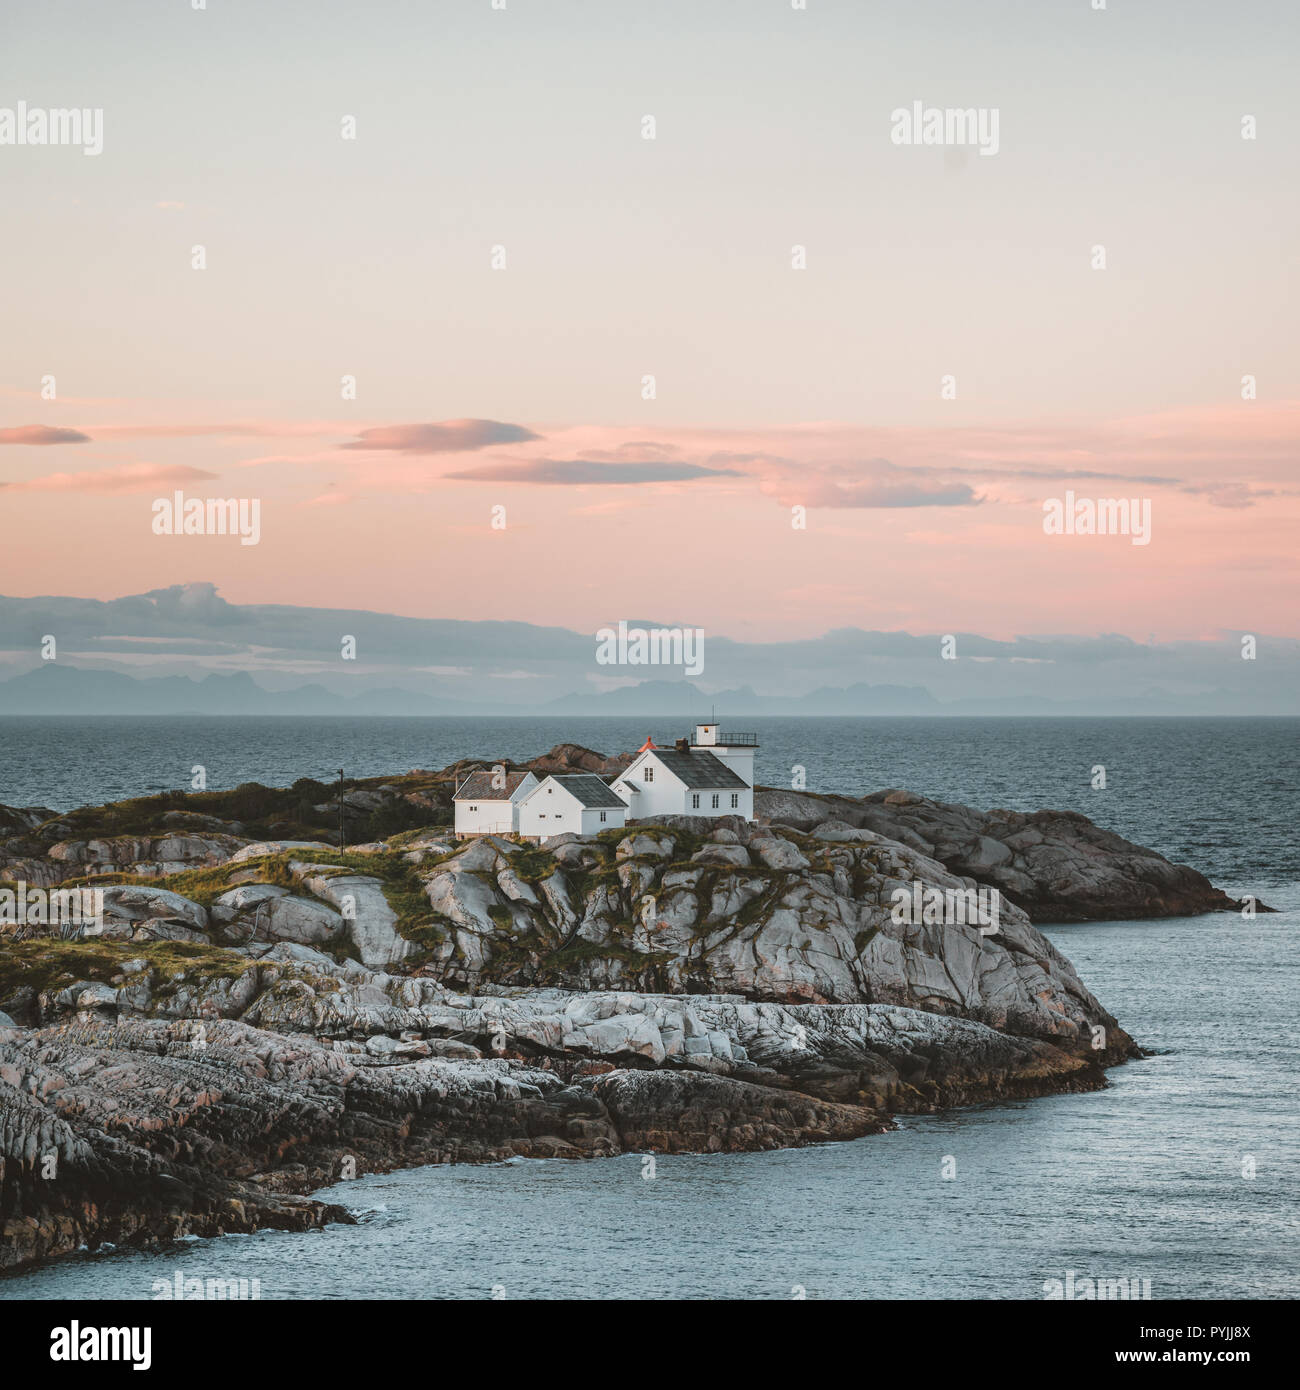 Sunrise and Sunset at Henningsvaer lighthouse with pink sky. The small fishing village located on several small islands in the Lofoten archipelago, No Stock Photo